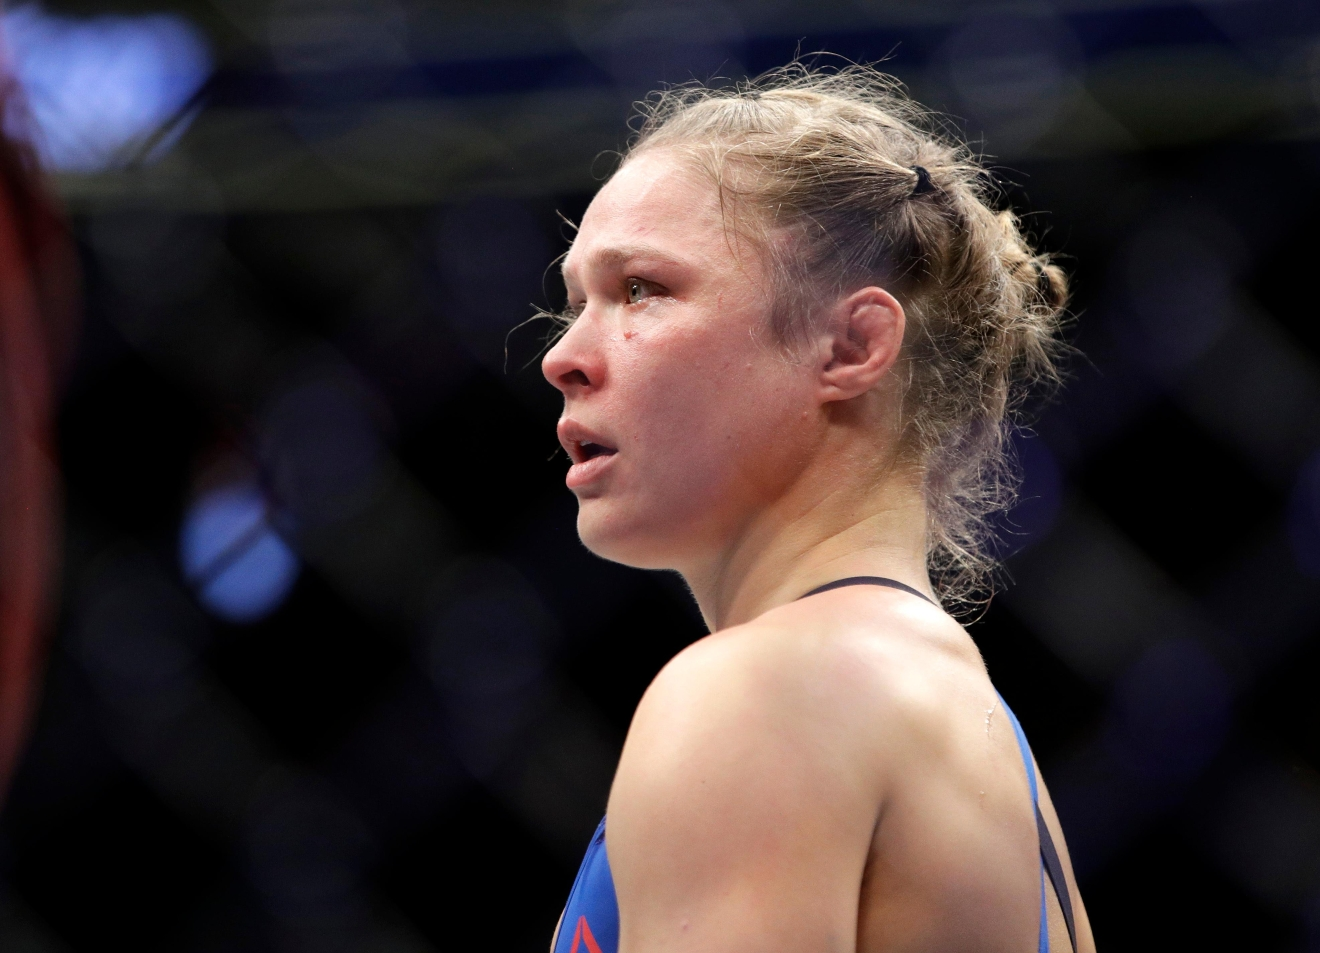 Ronda Rousey stands in the cage after Amanda Nunes forced a stoppage in the first round of their women's bantamweight championship mixed martial arts bout at UFC 207, Friday, Dec. 30, 2016, in Las Vegas. (AP Photo/John Locher)